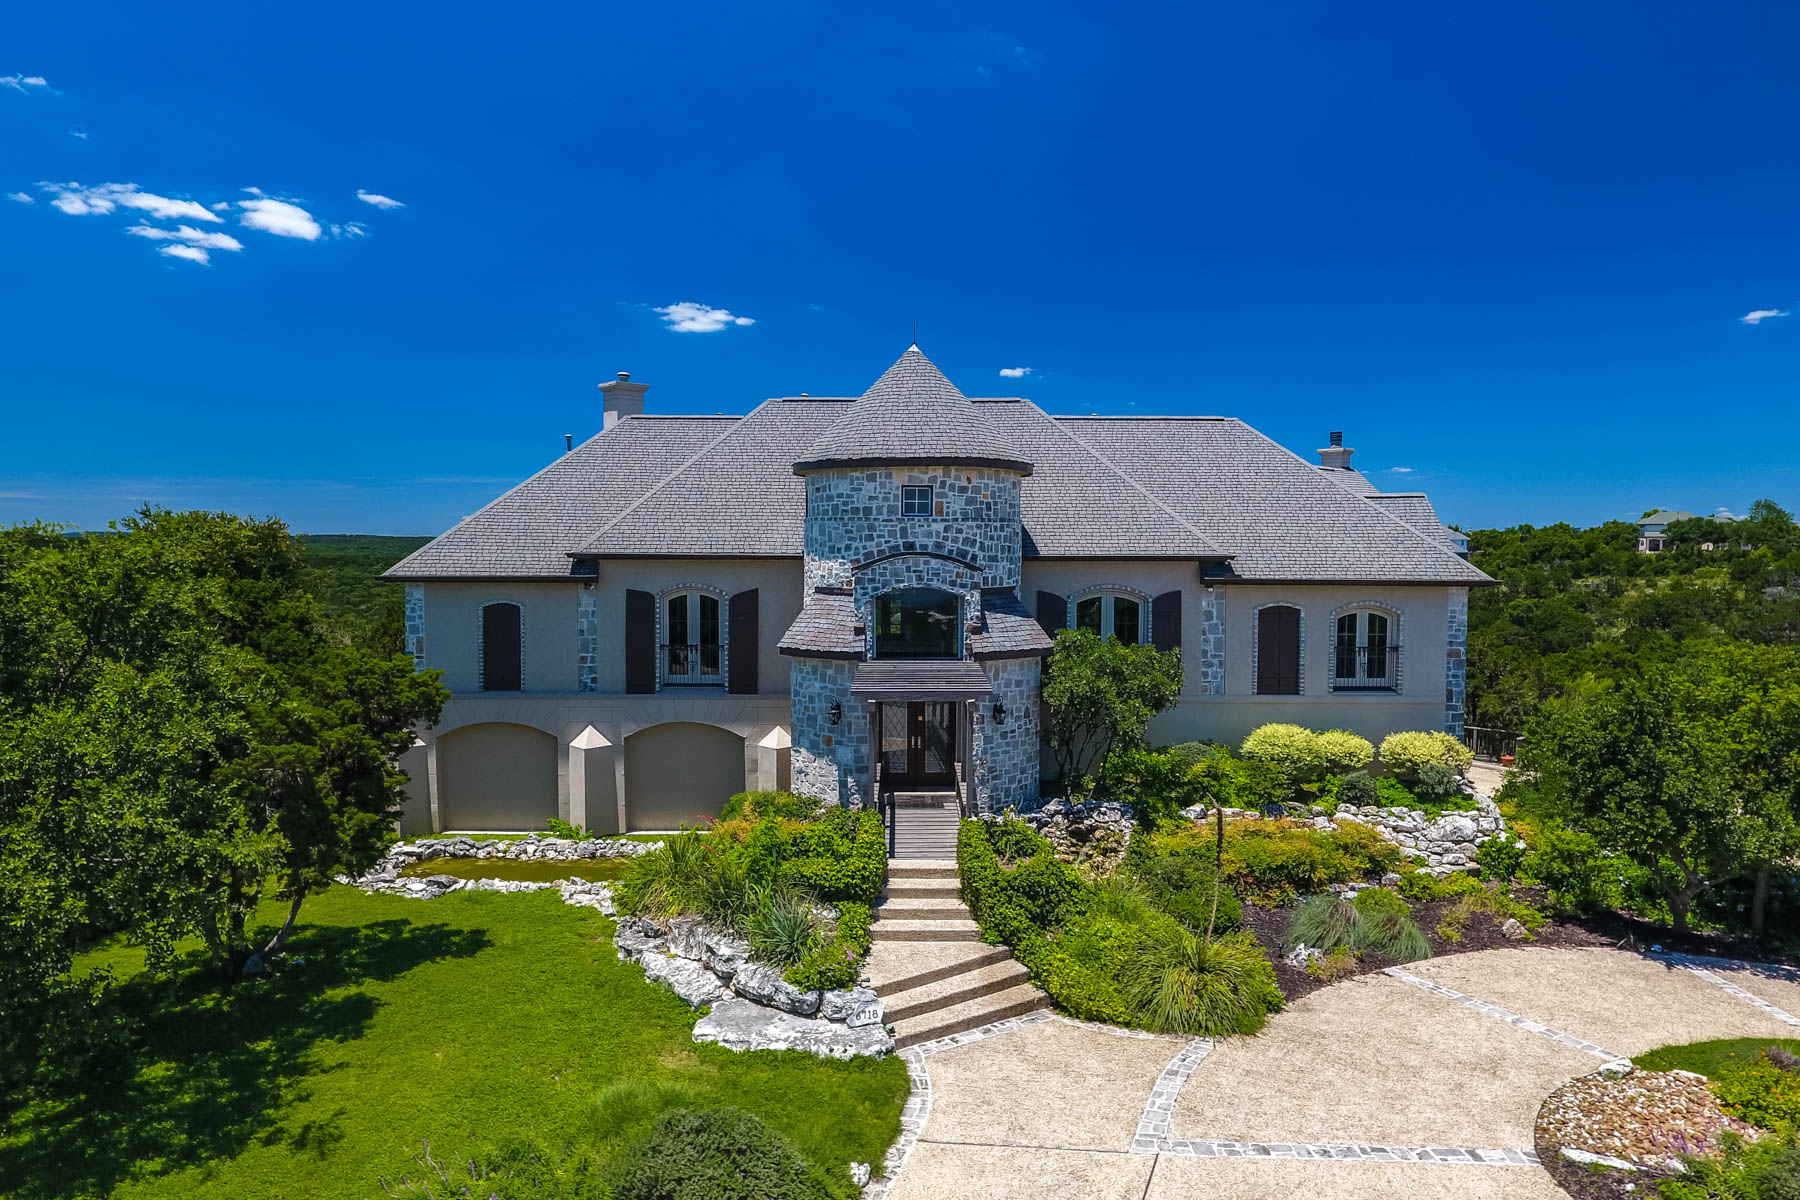 Single Family Home for Sale at Breathtaking Estate in Crownridge 6718 Wagner Way San Antonio, Texas 78256 United States